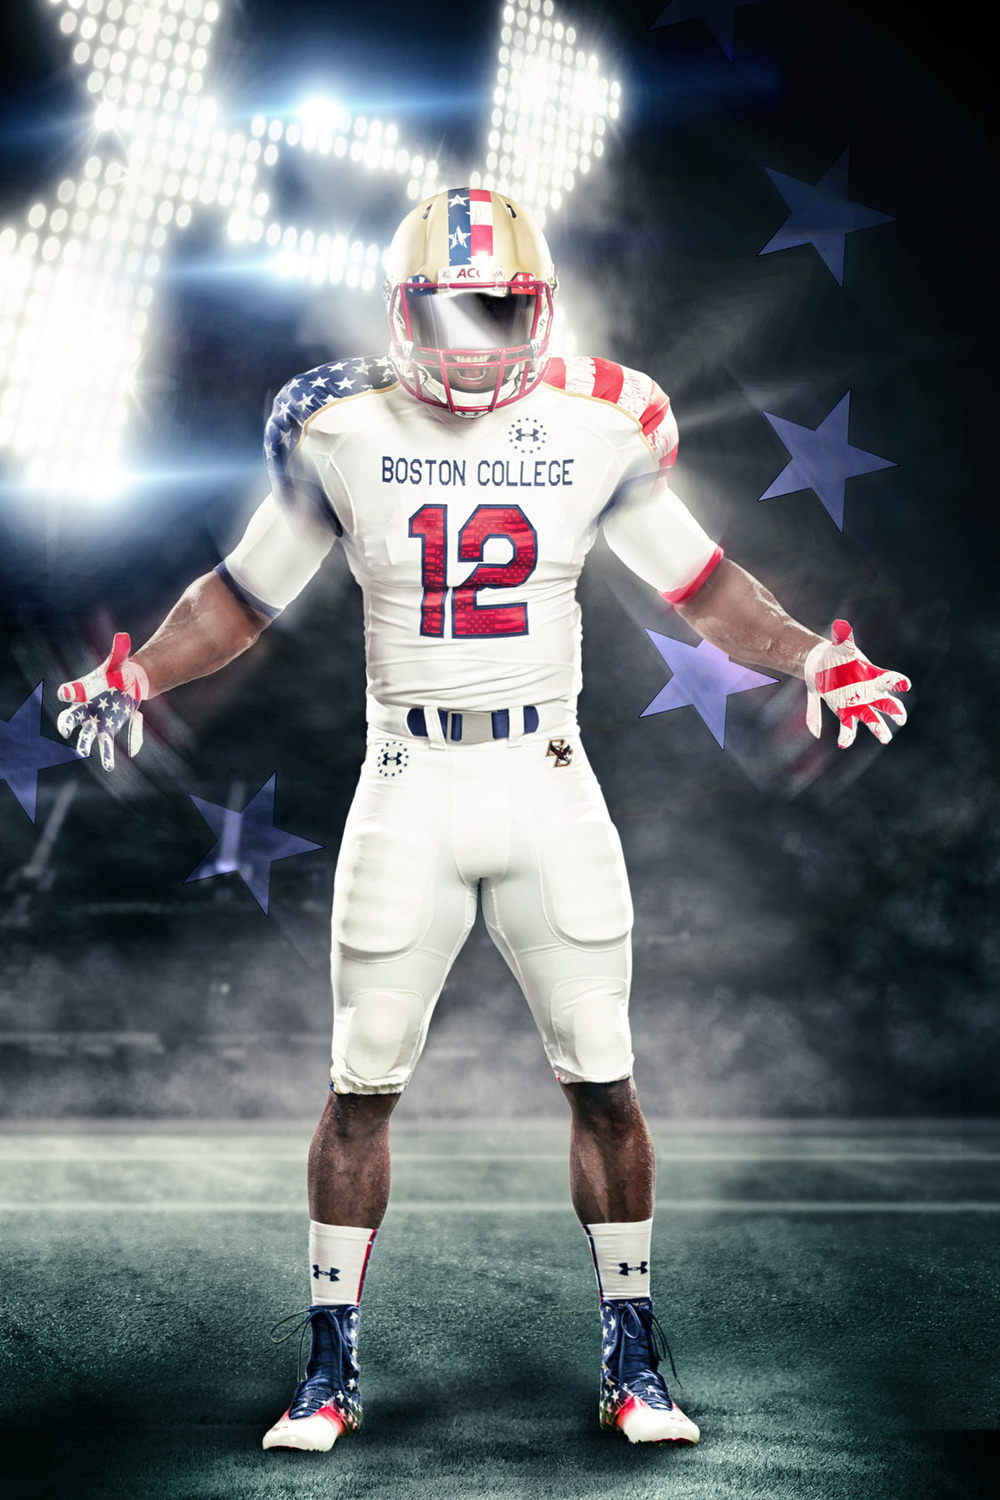 Boston-college-new-under-armour-football-uniform-1.jpeg